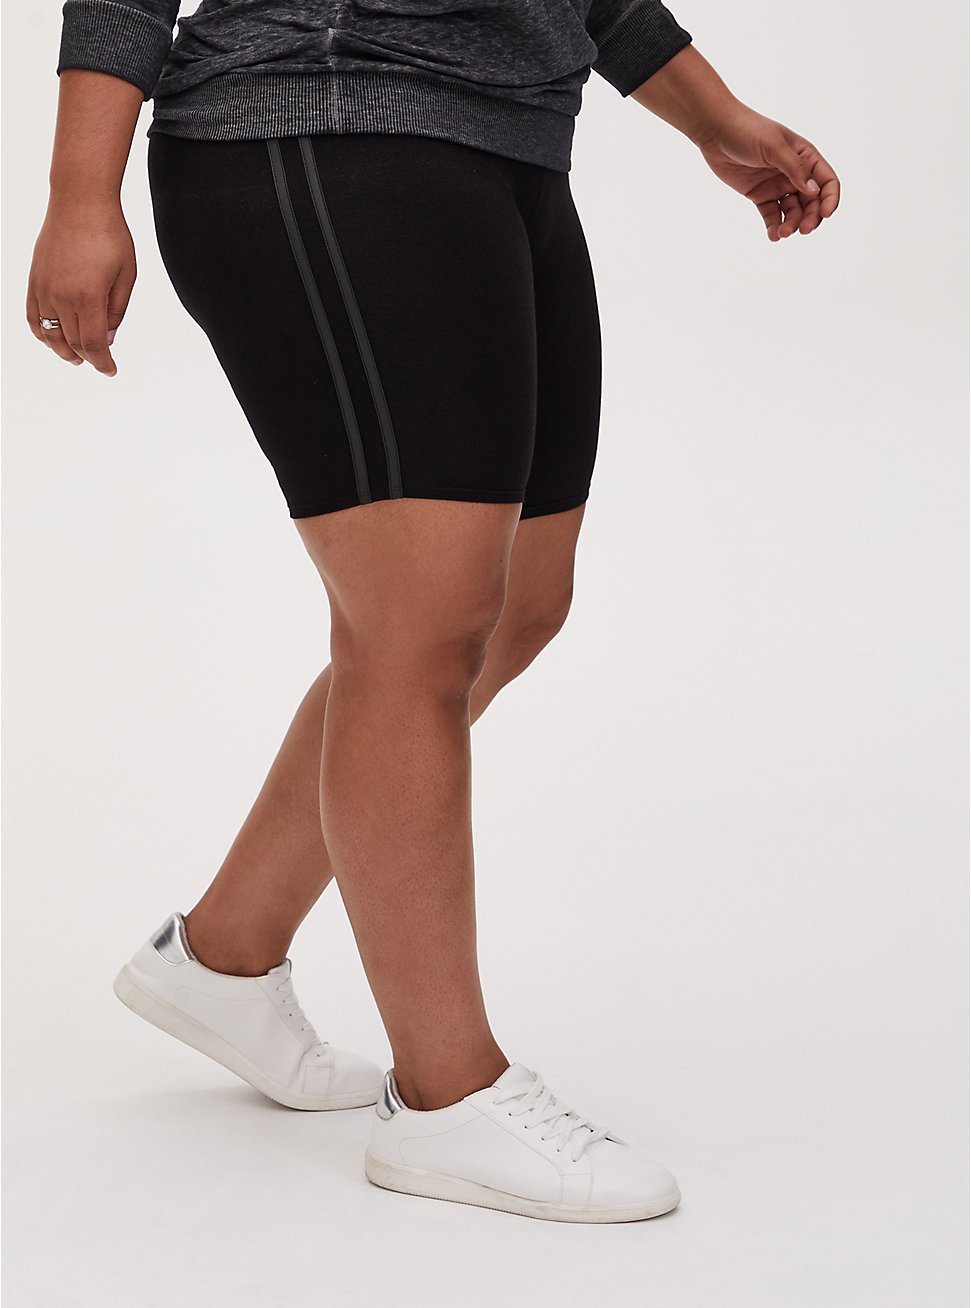 Black & Faux Leather Dual Stripe Bike Short, BLACK, hi-res